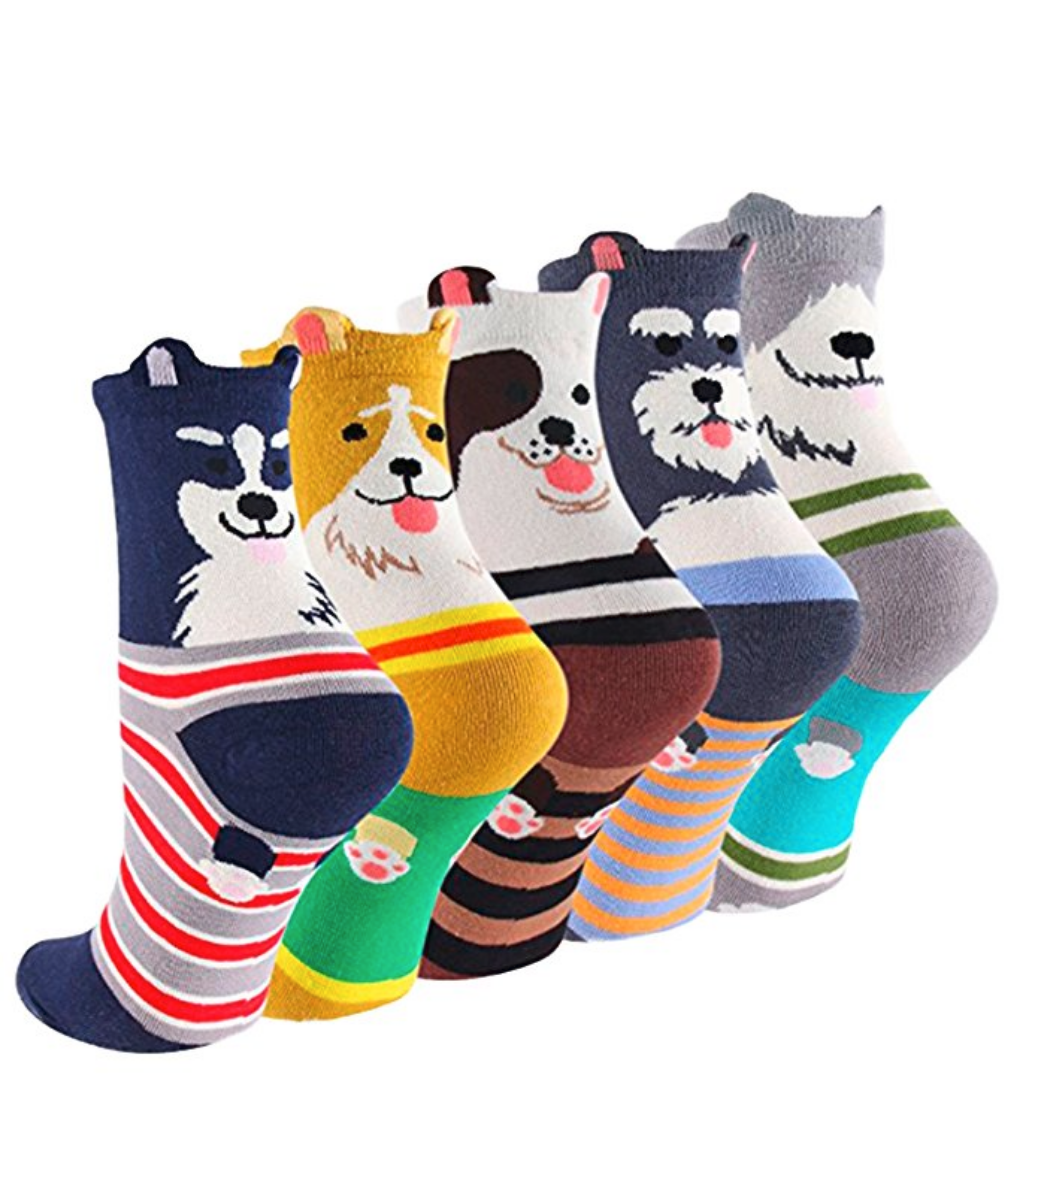 Our 11-year-old girl is going to flip over these cool dog socks!!